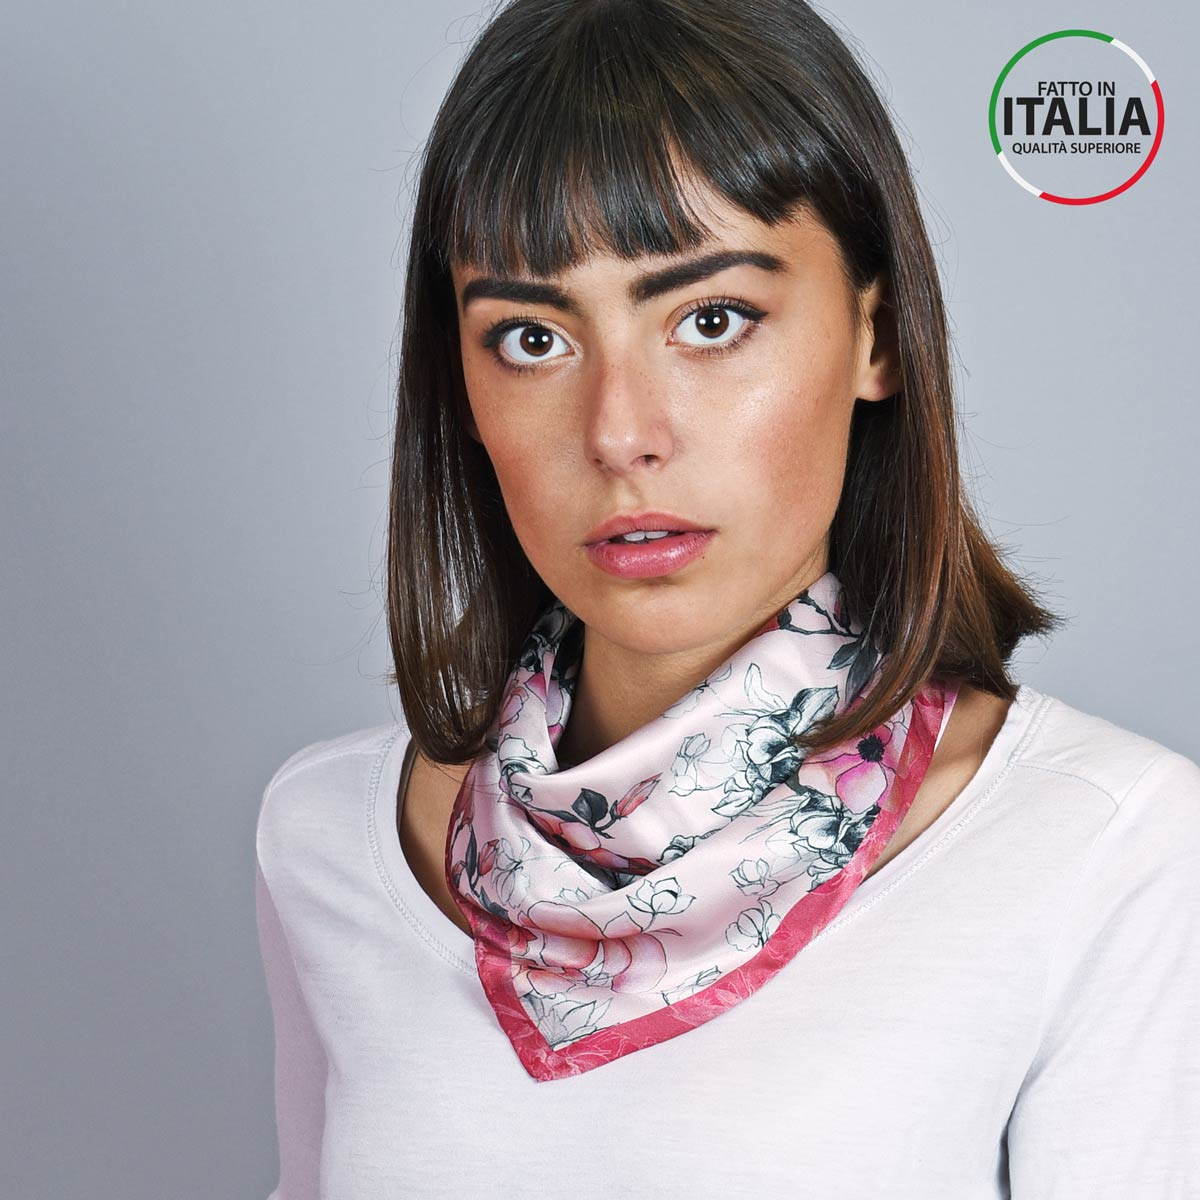 AT-05395_W12-1IT_Foulard-carre-soie-floral-rose-rouge-made-in-italie